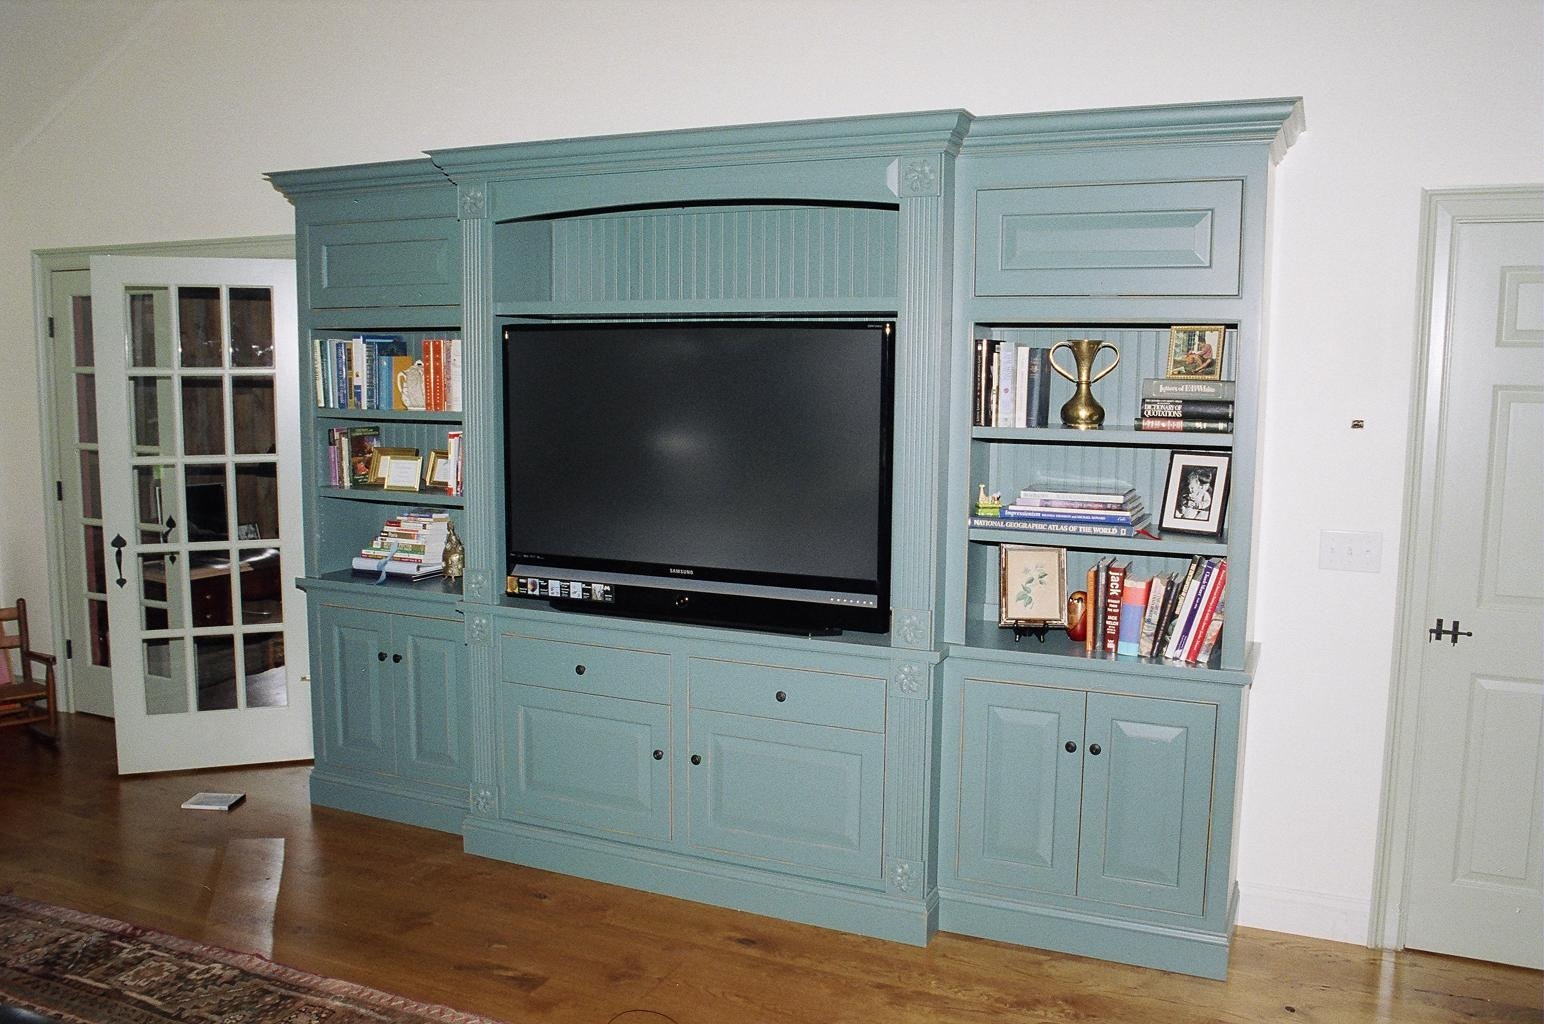 Free Standing Maple Tv Cabinet | Walterswoodworking In Maple Tv Cabinets (View 6 of 15)